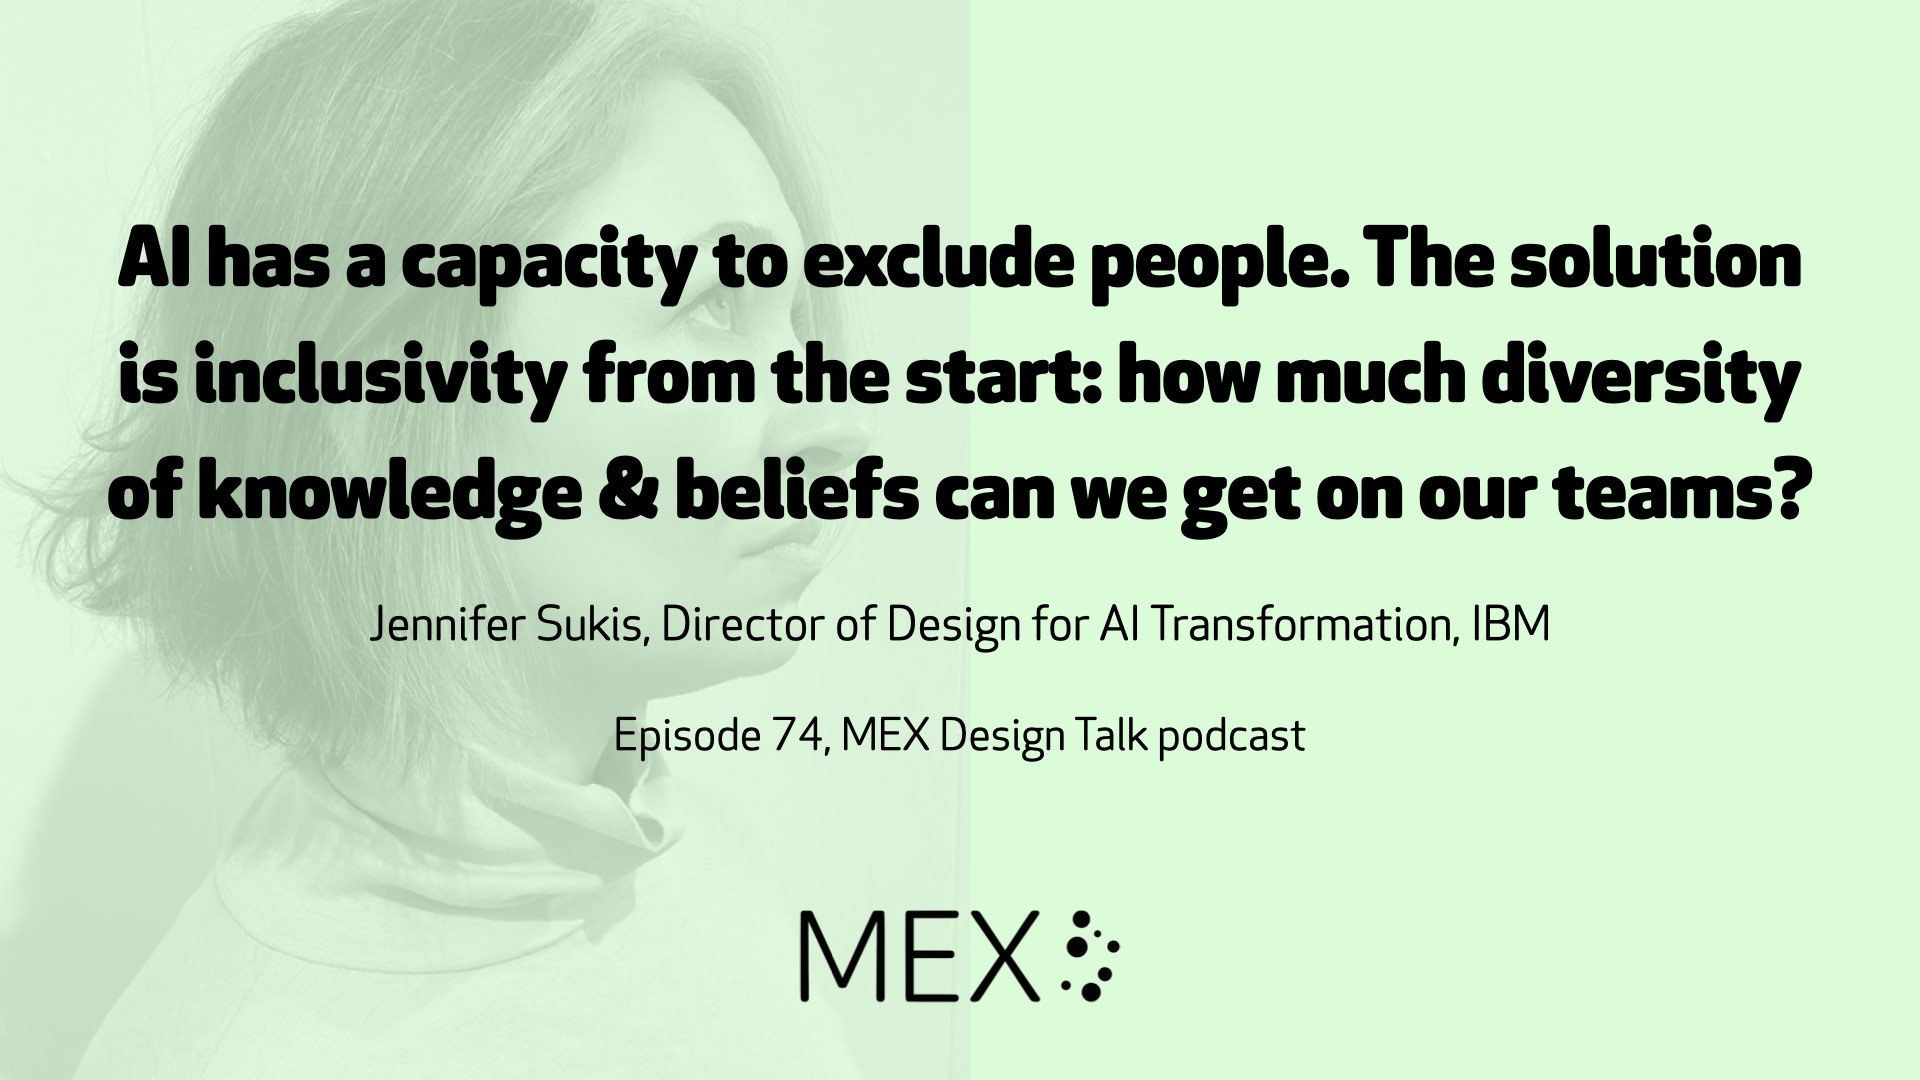 AI has a capacity to exclude people. The solution is inclusivity from the start: how much diversity of knowledge & beliefs can we get on our teams? Jennifer Sukis, Director of Design for AI Transformation, IBM Episode 74, MEX Design Talk podcast